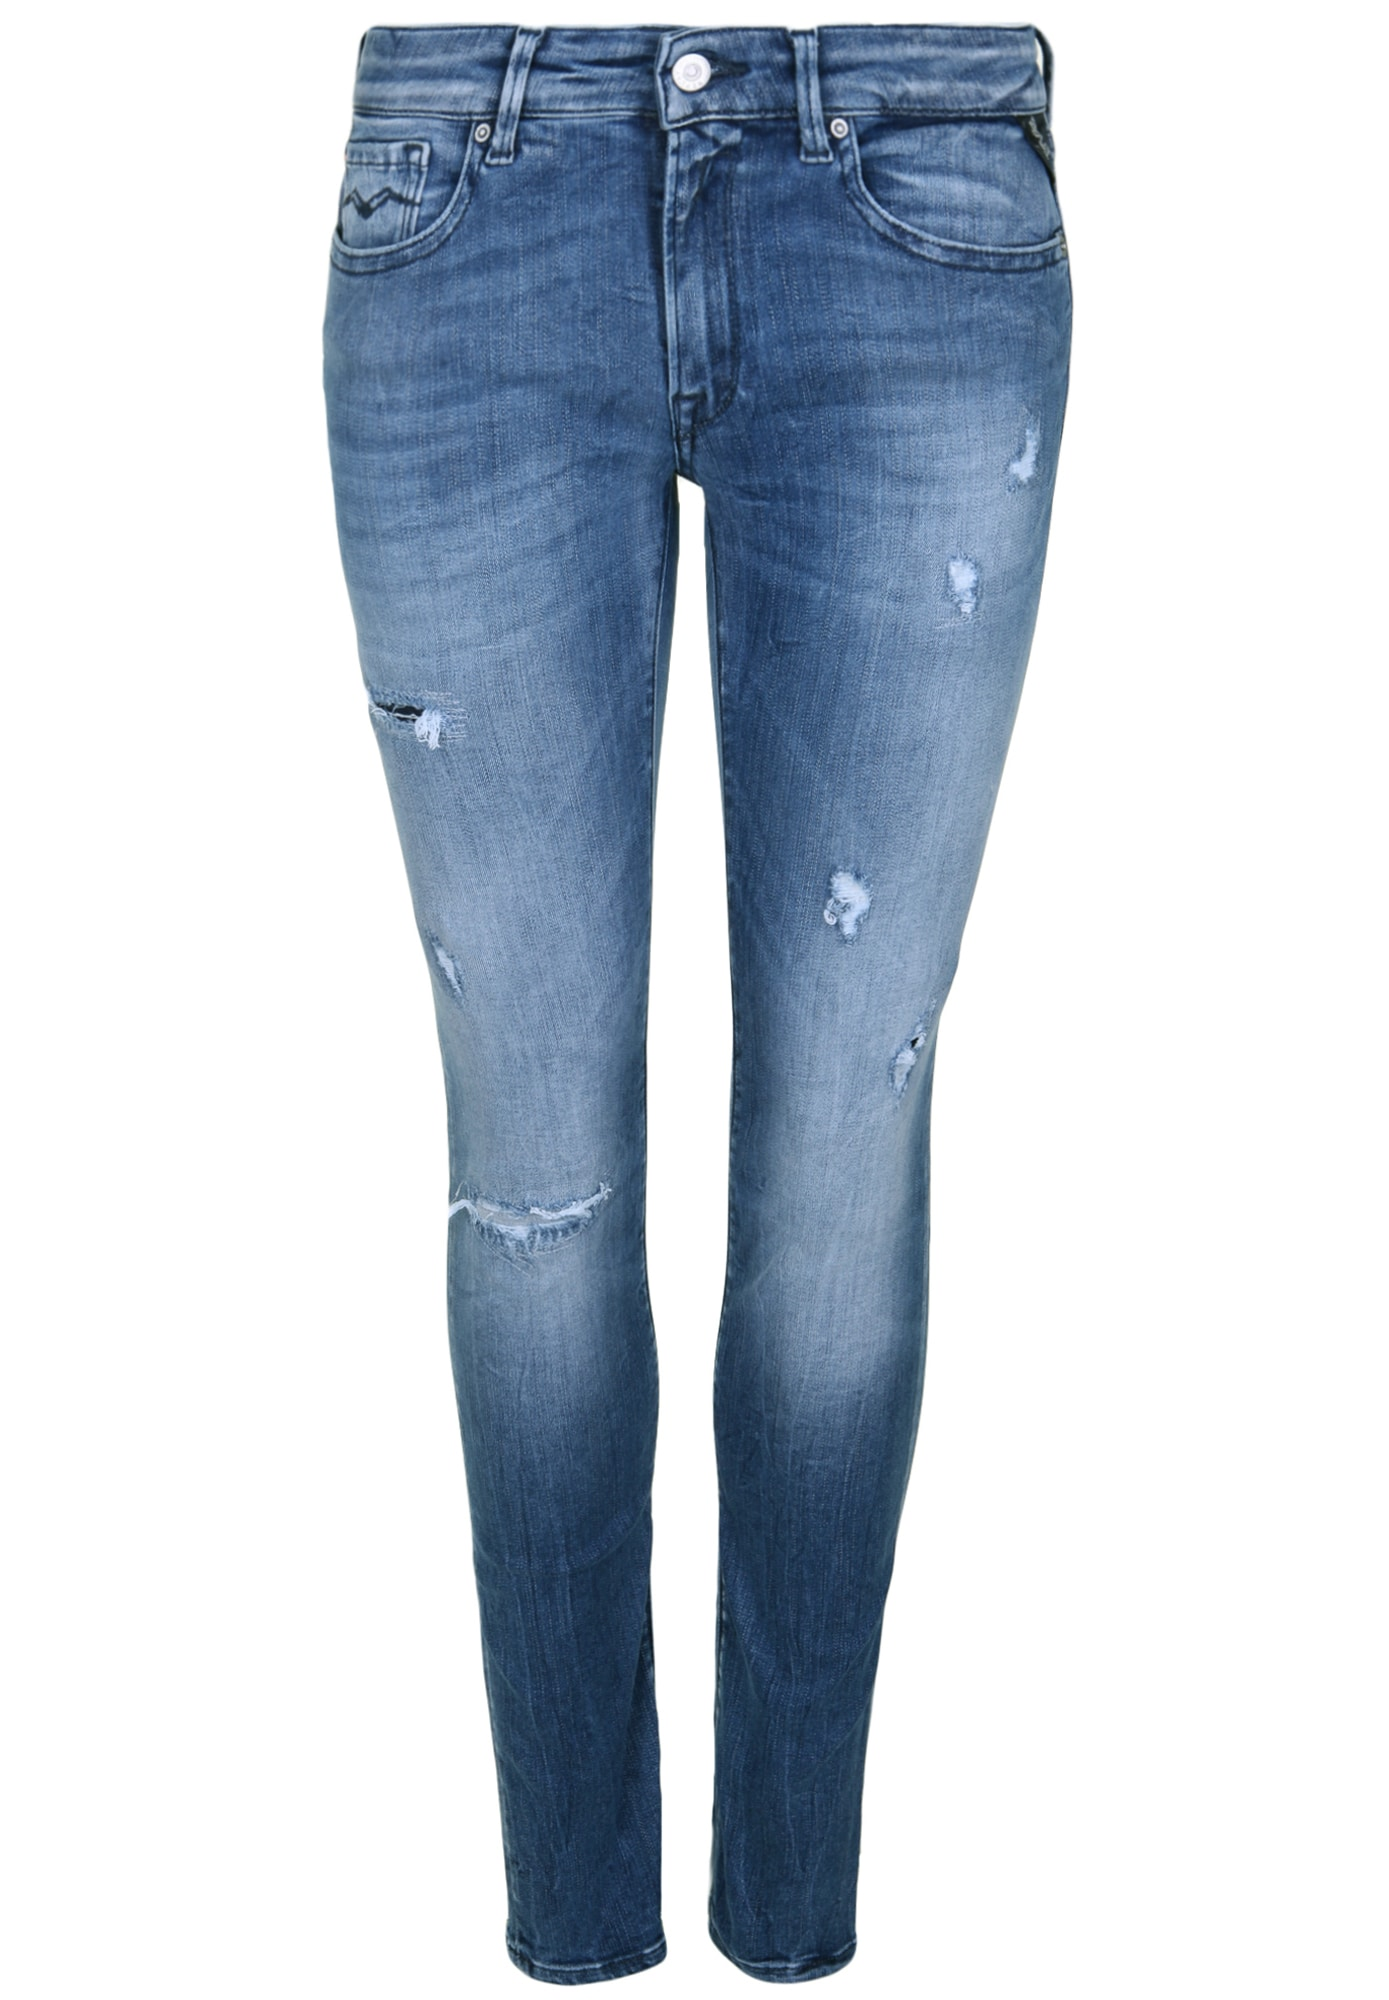 REPLAY Dames Jeans LUZ DESTROYED blauw